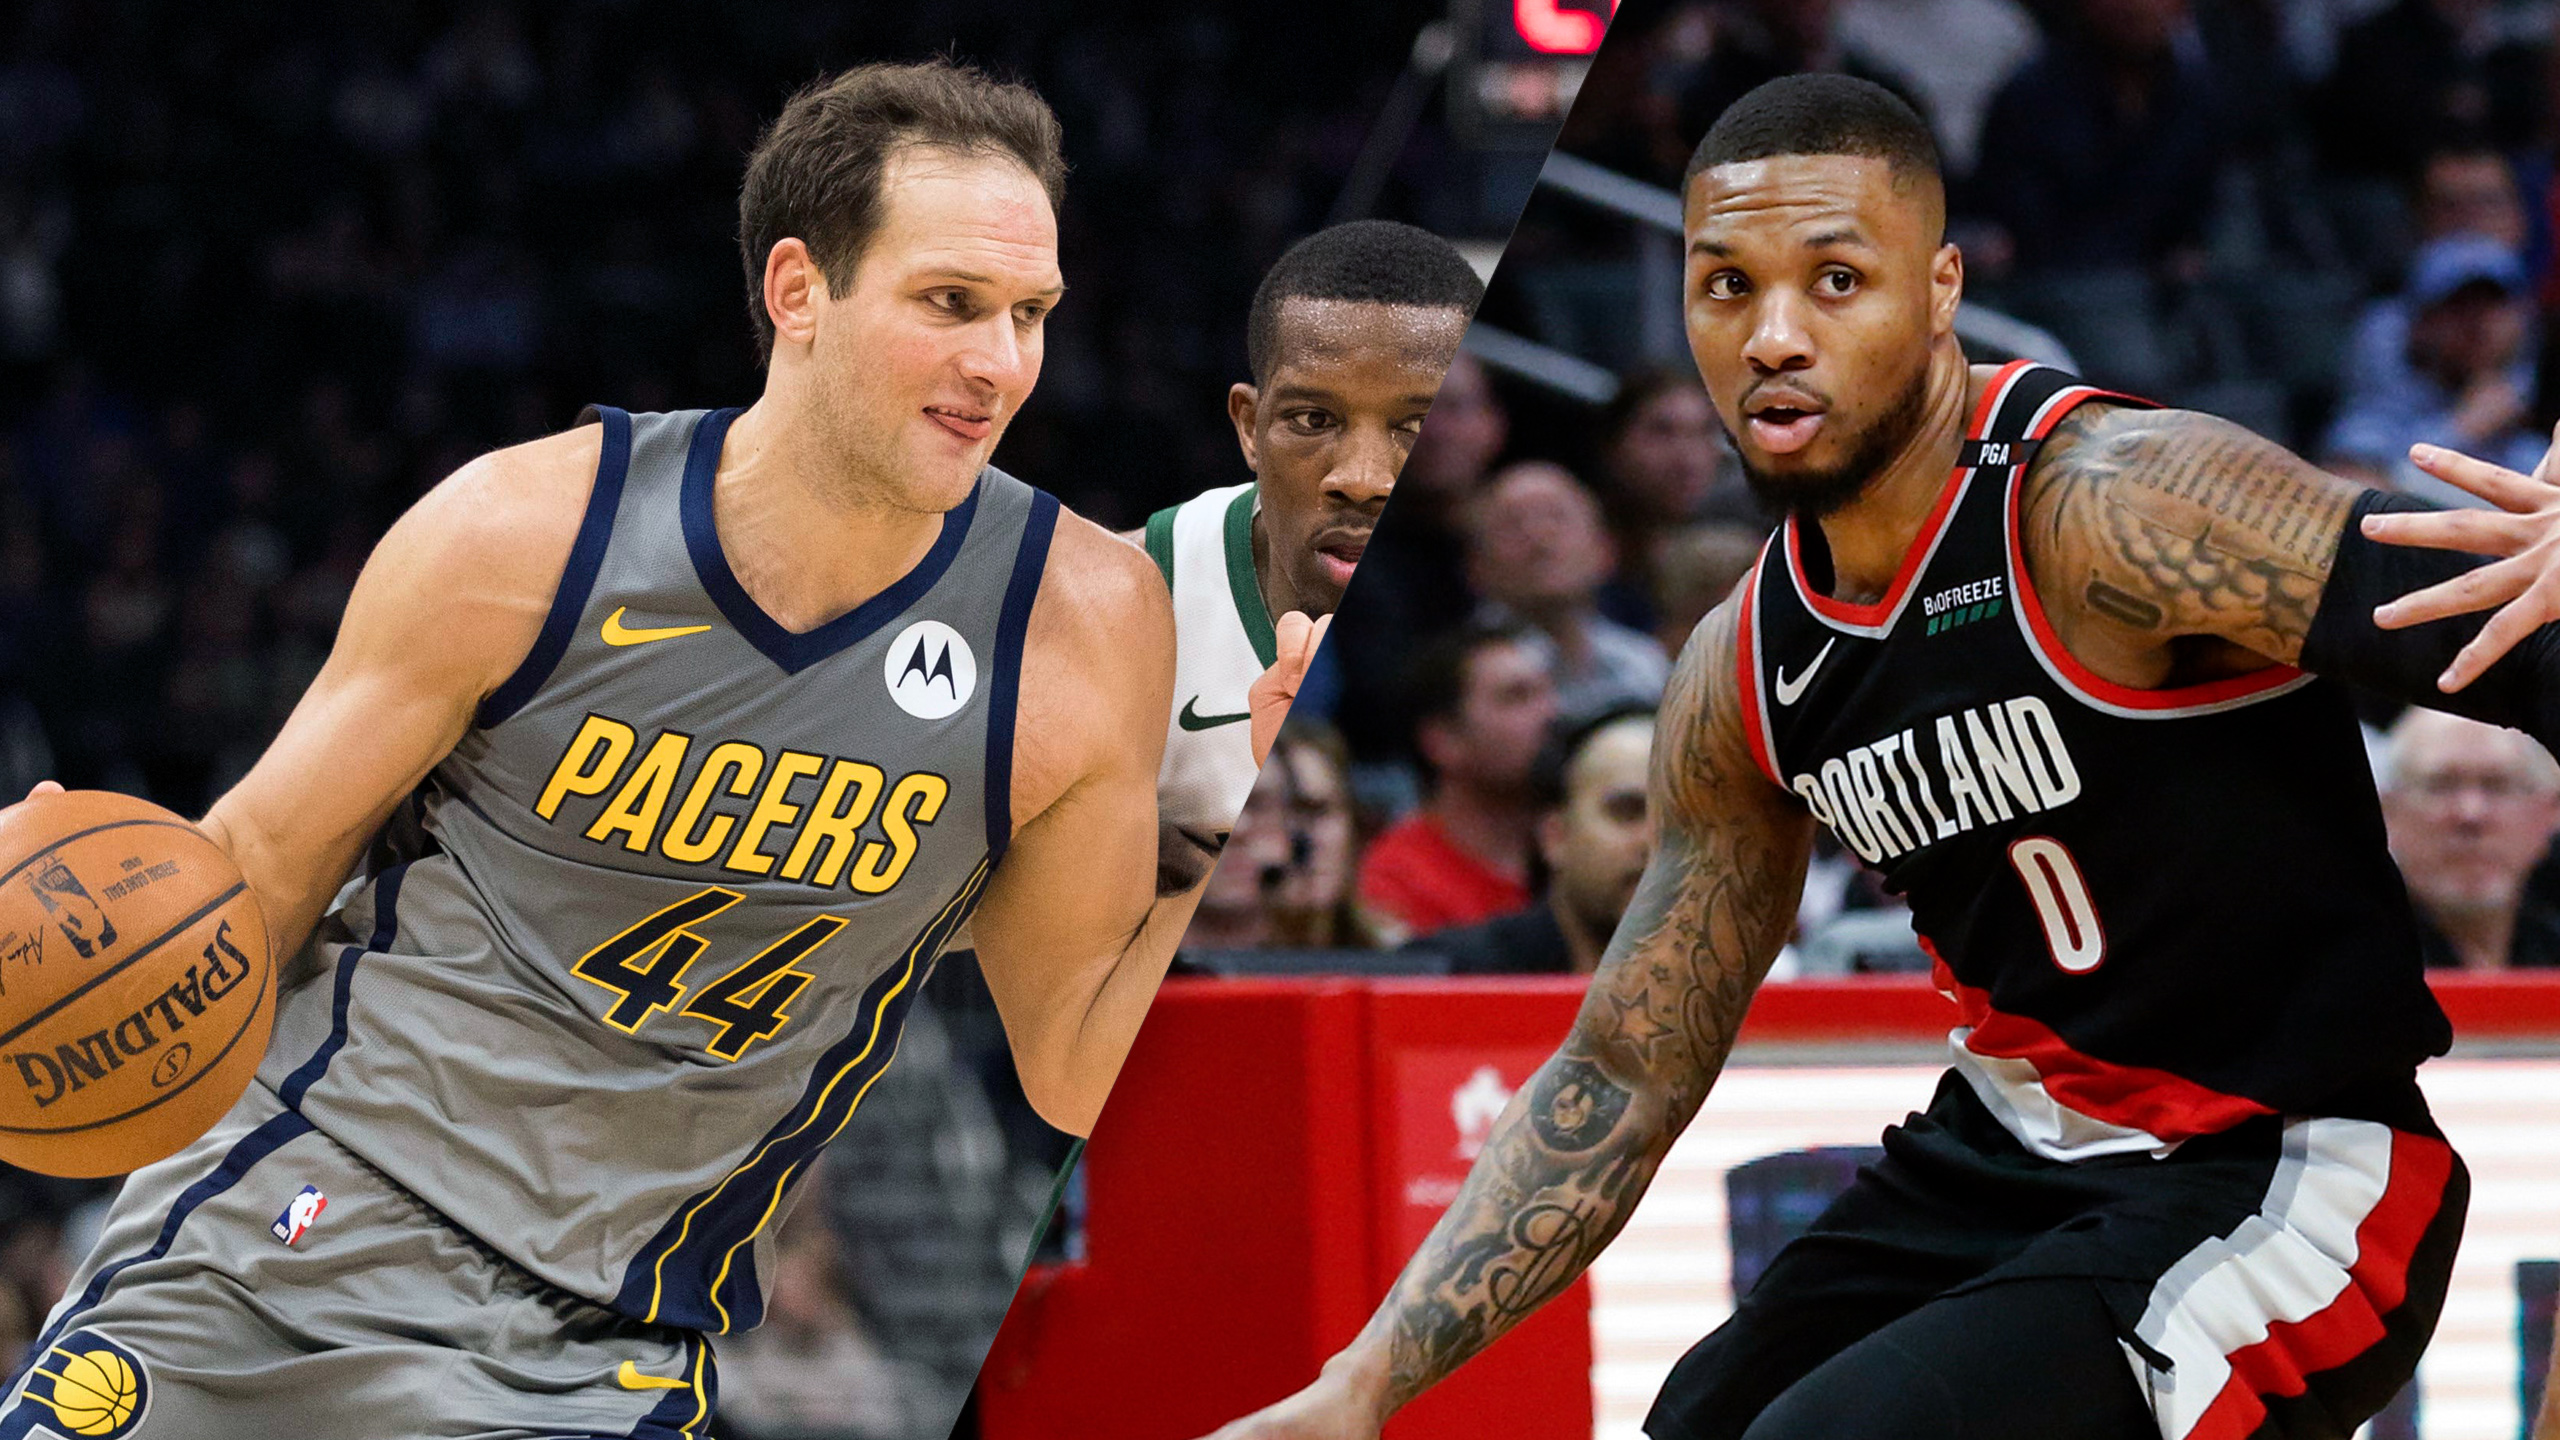 Indiana Pacers vs. Portland Trail Blazers